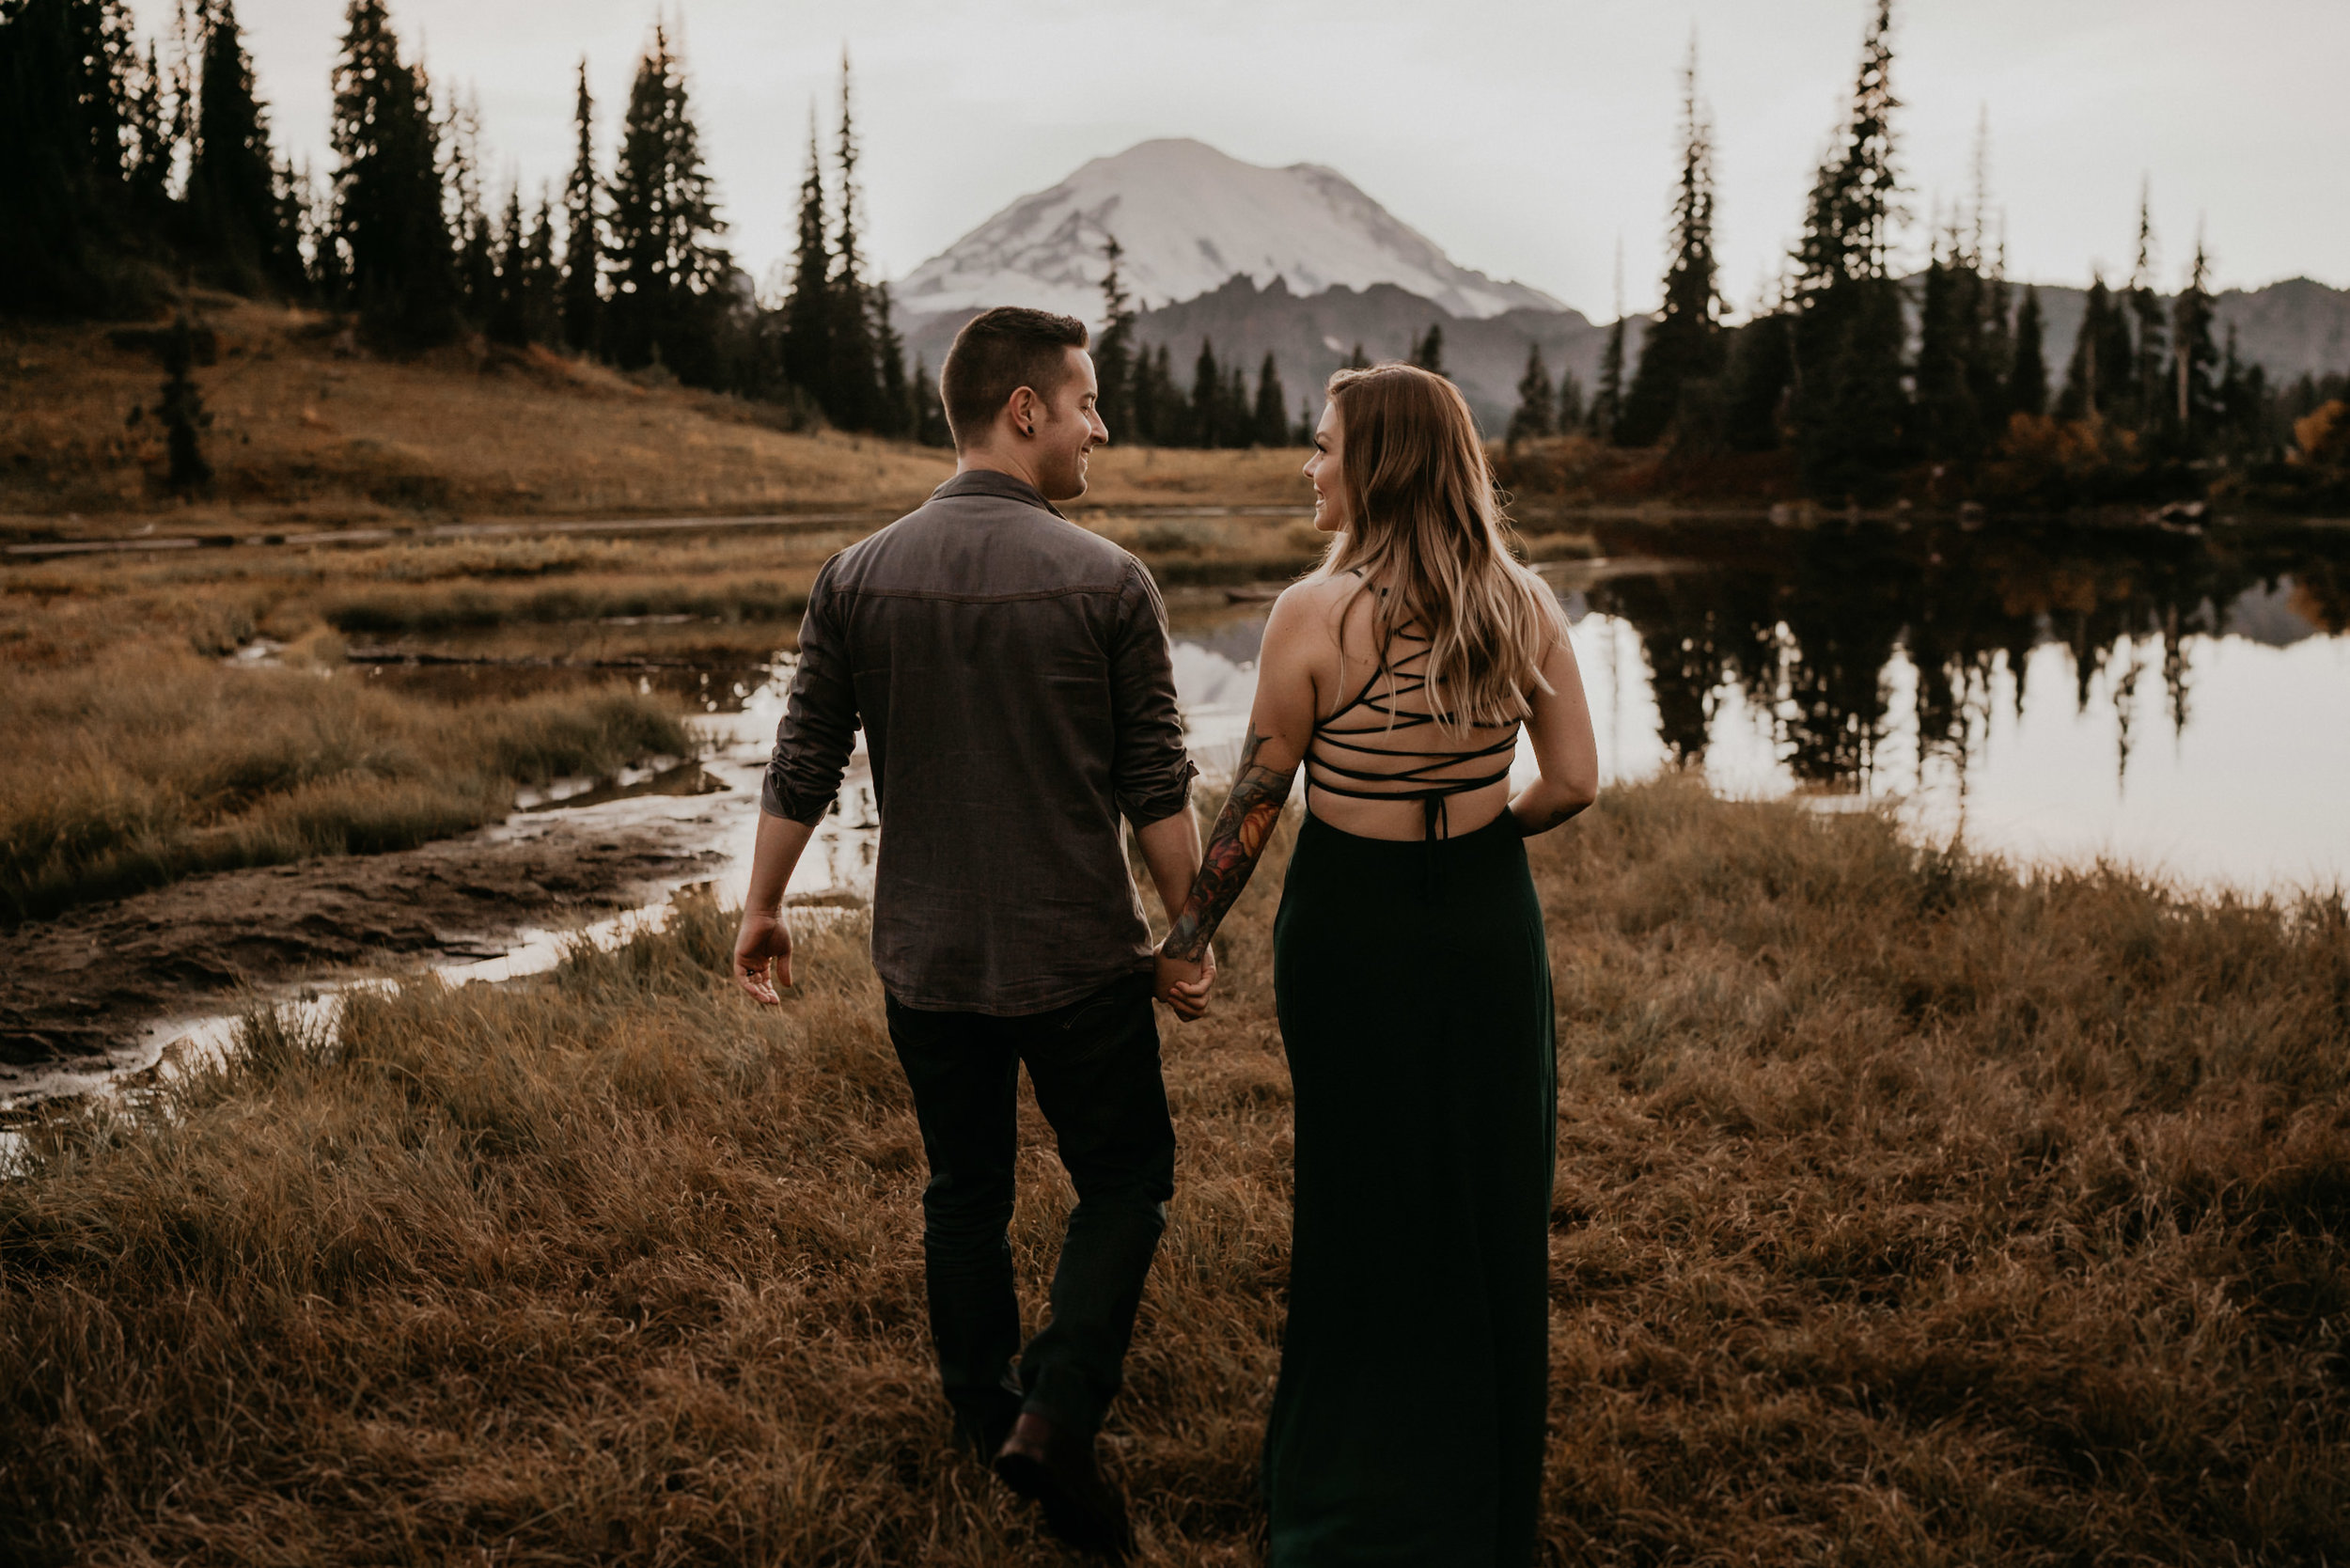 summer Mount rainier national park adventure elopement at tipsoo lake